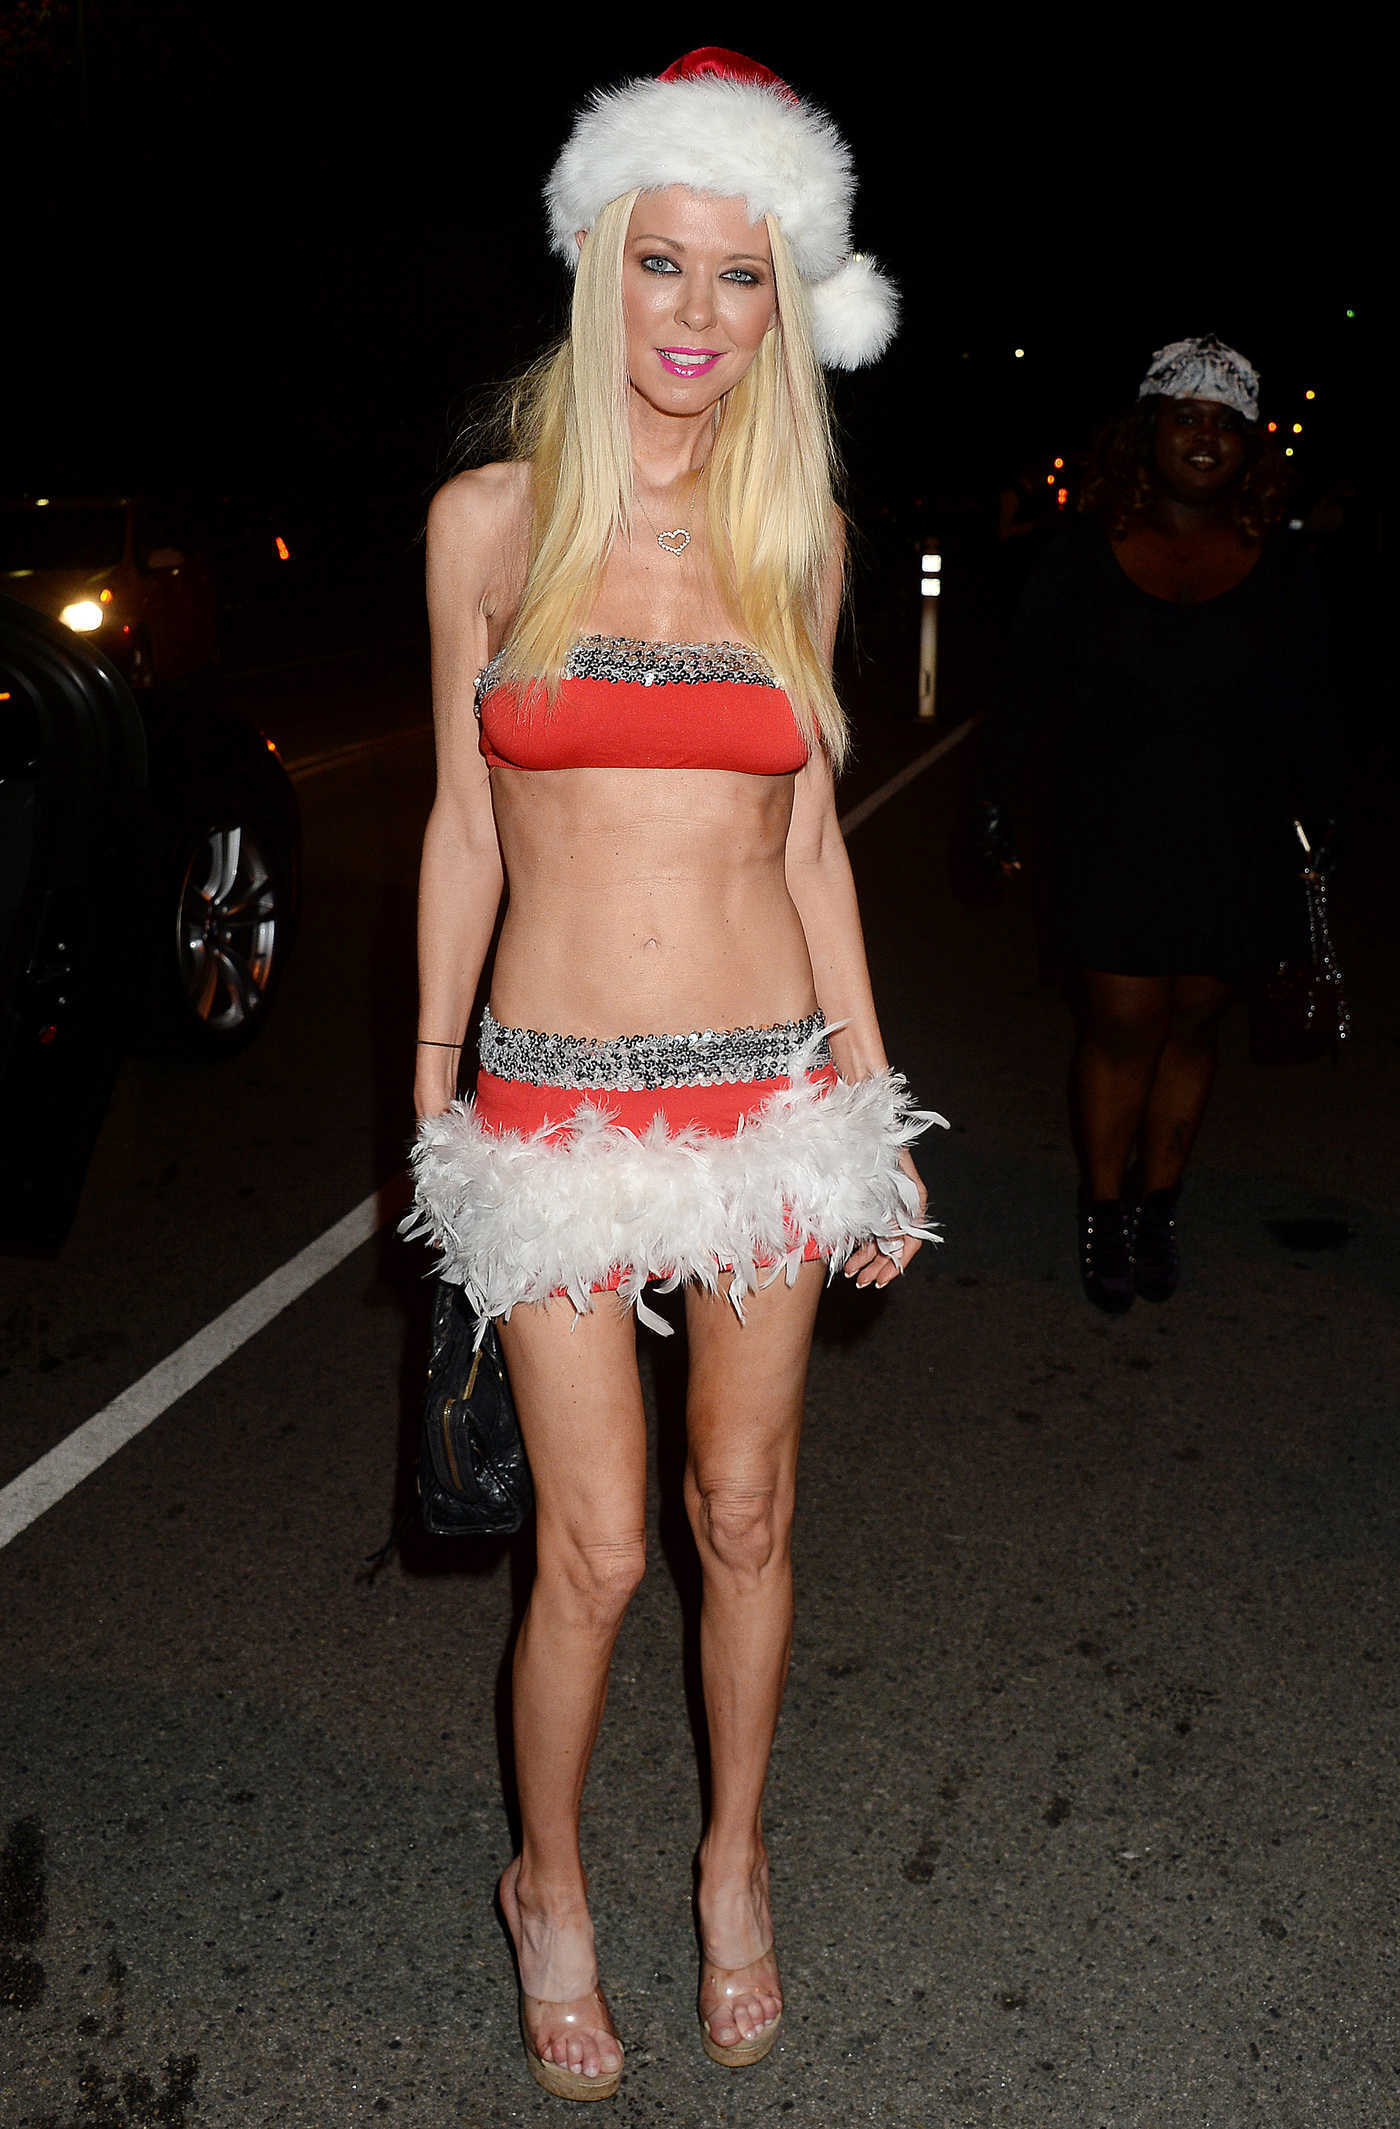 Tara Reid at the 6th Annual Treats Magazine Halloween Party in Los Angeles 10/29/2016